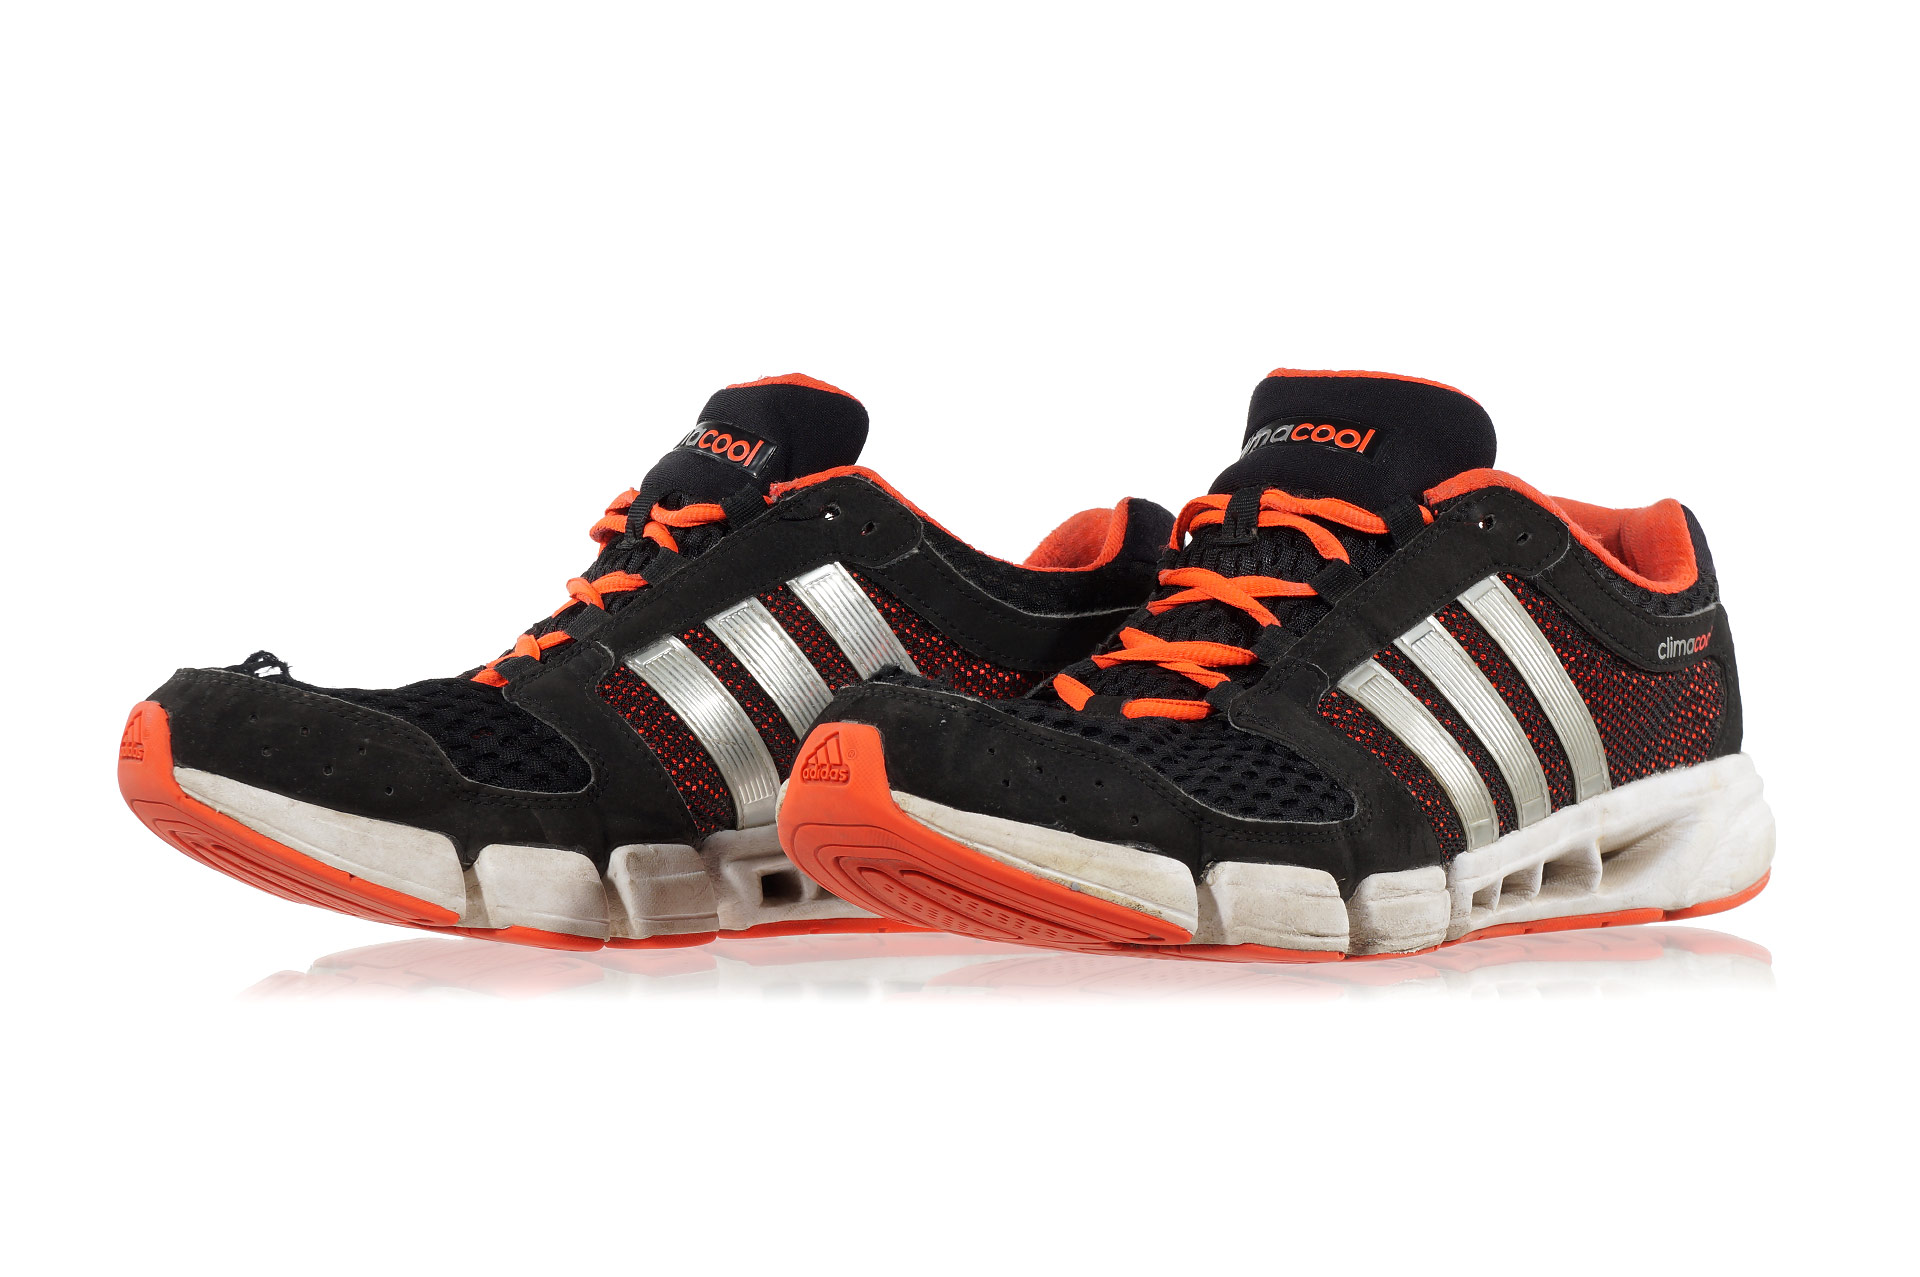 closer at super quality 100% top quality Мужские кроссовки сильно б/у Adidas Climacool Solution 2.0 1WWS